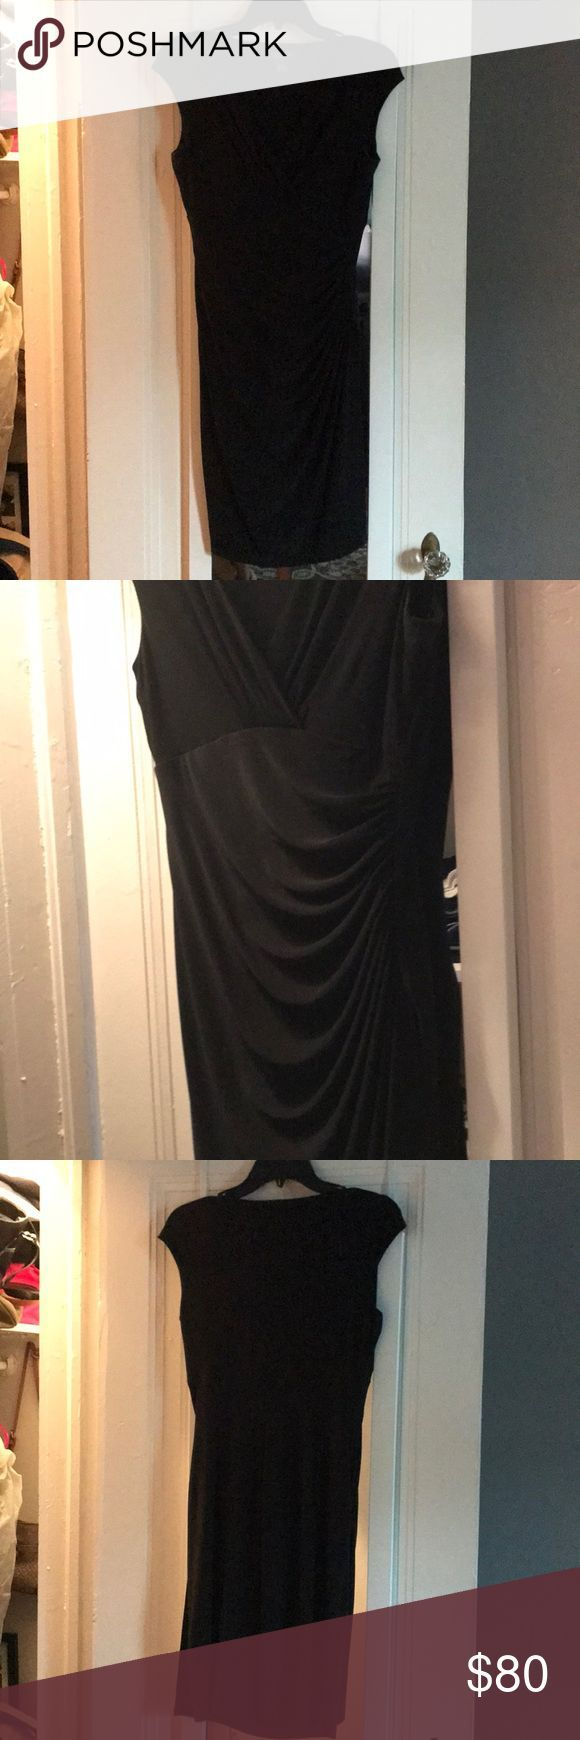 Ralph Lauren Cocktail Dress Worn once for a work event! Perfect condition littl…